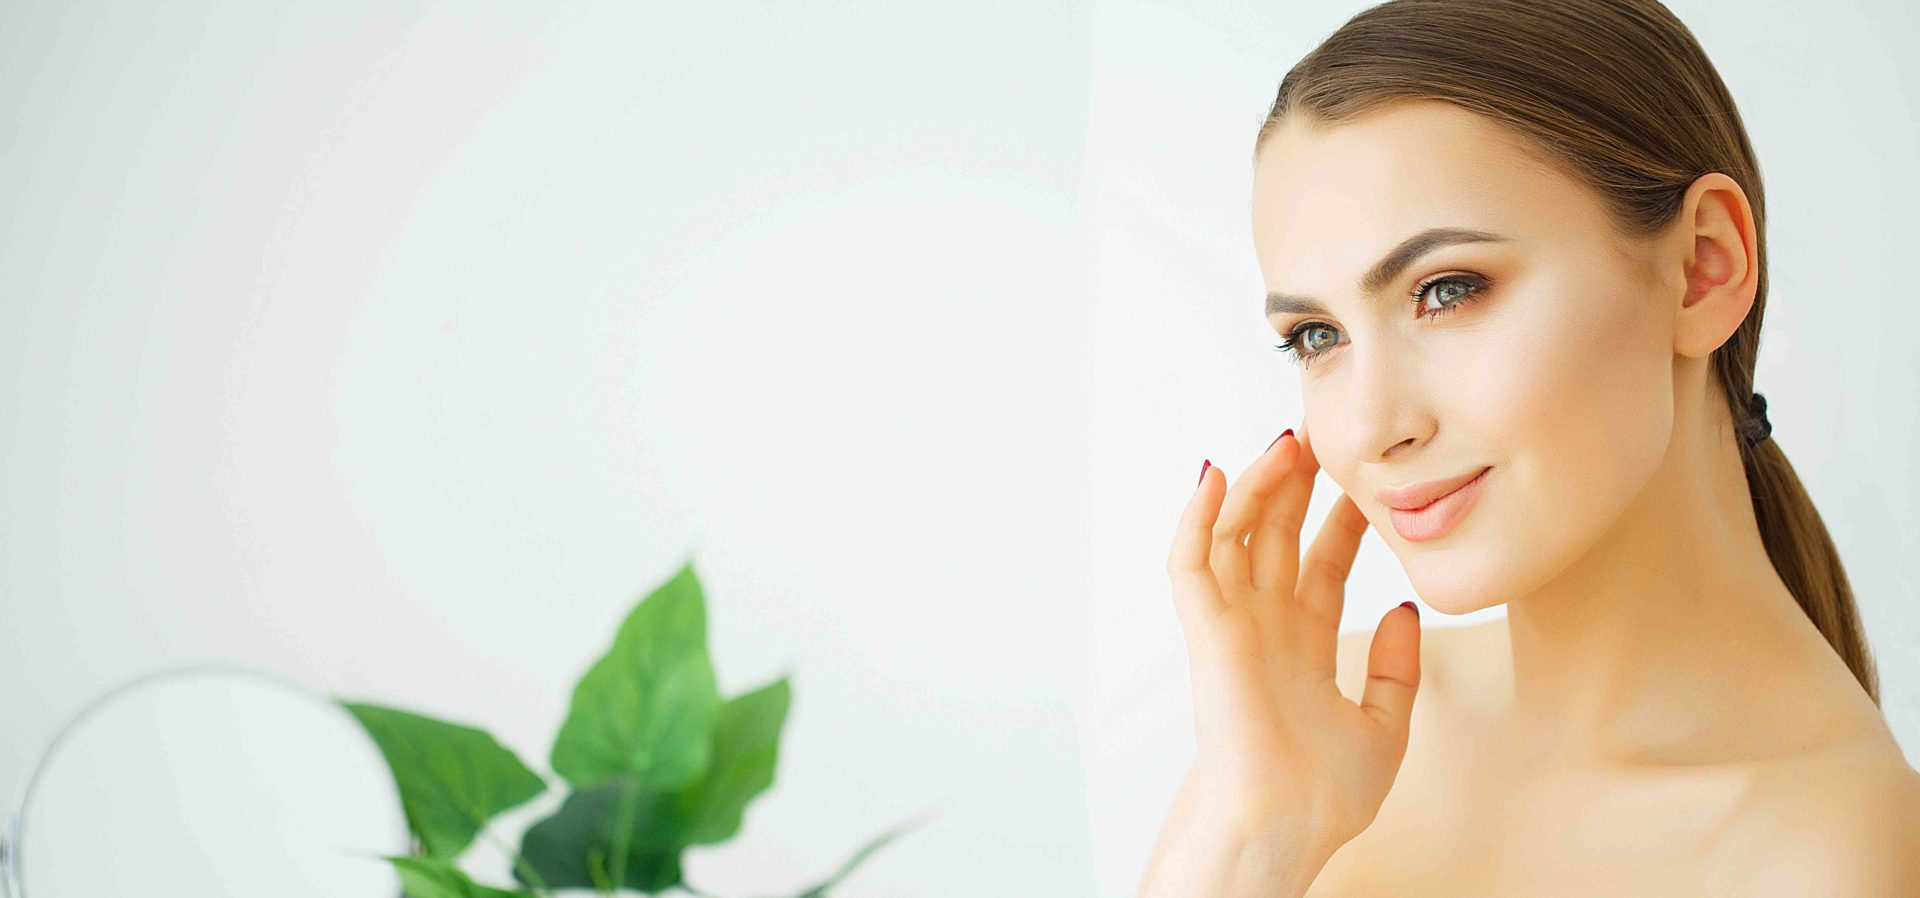 Want to know about botox and filler treatment in Jaipur